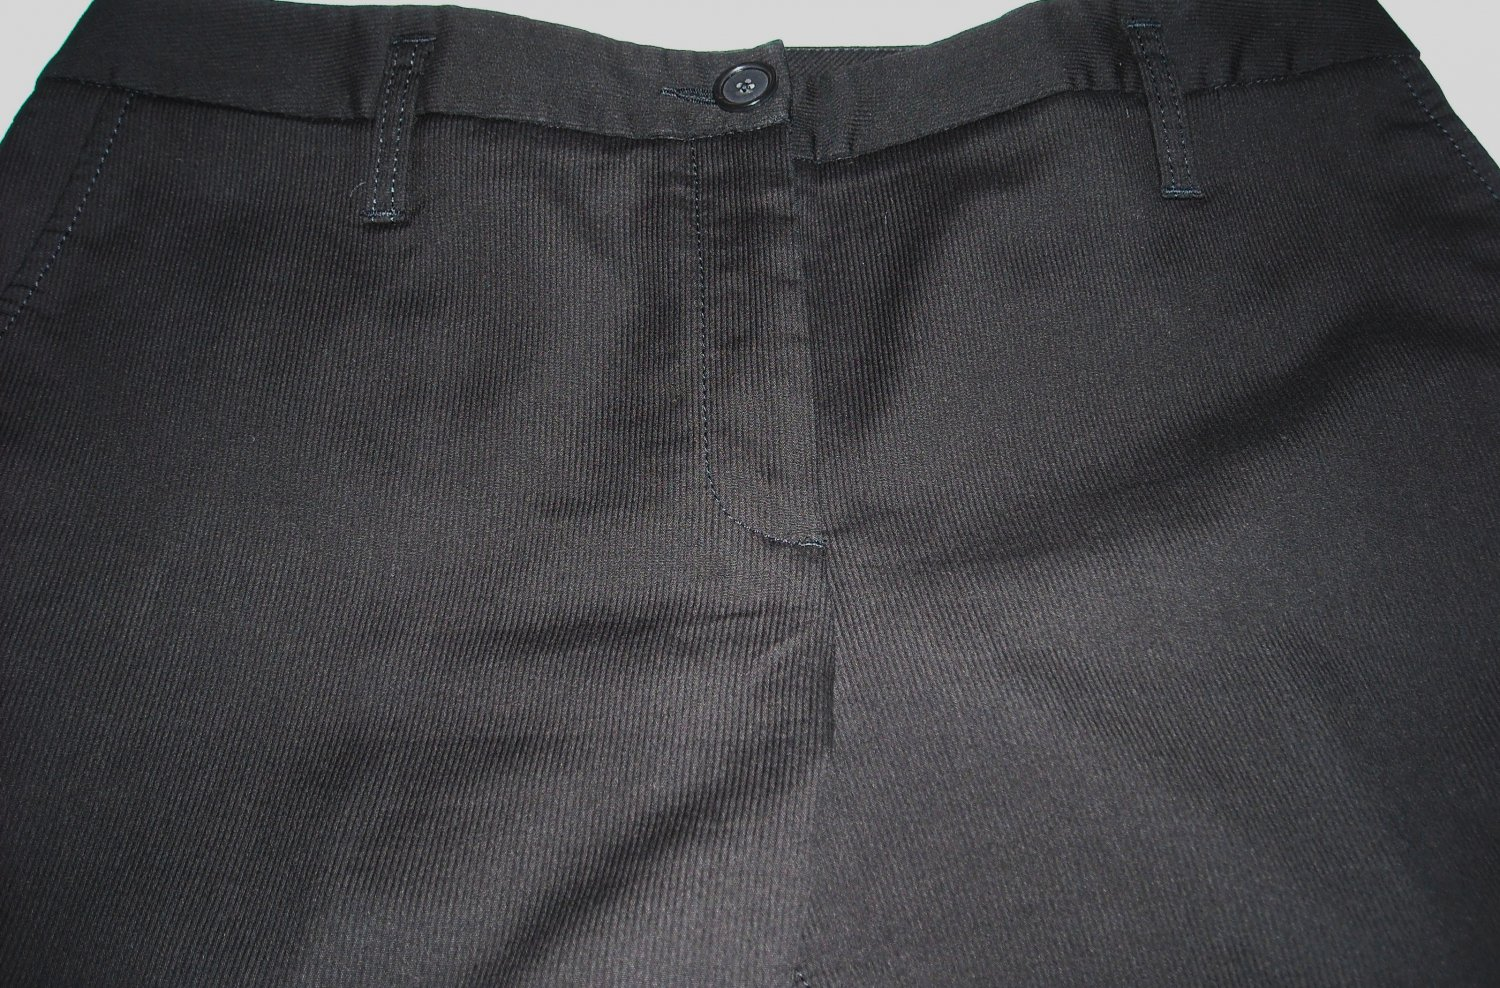 ANN TAYLOR BLACK TEXTURED PANTS SIZE 10 (SALE)